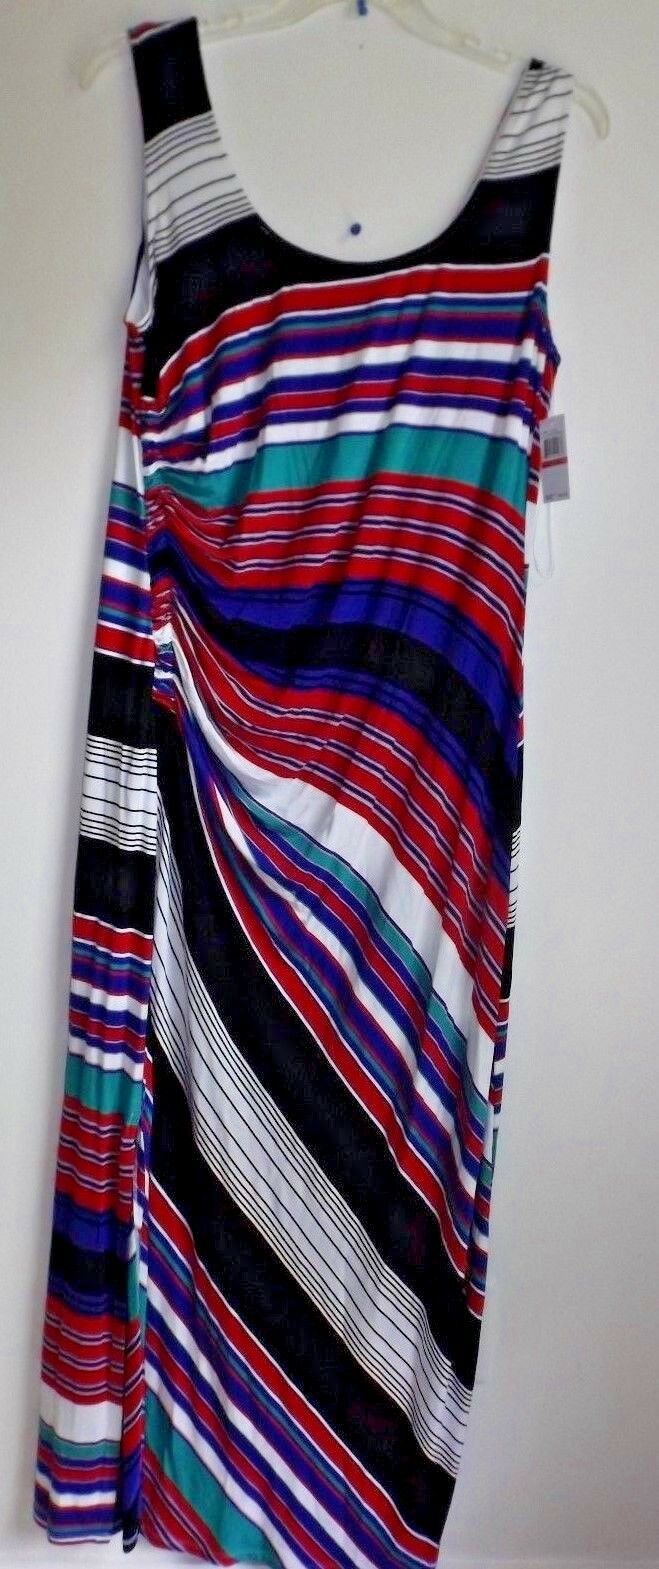 NWT Spense XXL Sleeveless multi-color striped calf length dress NWT